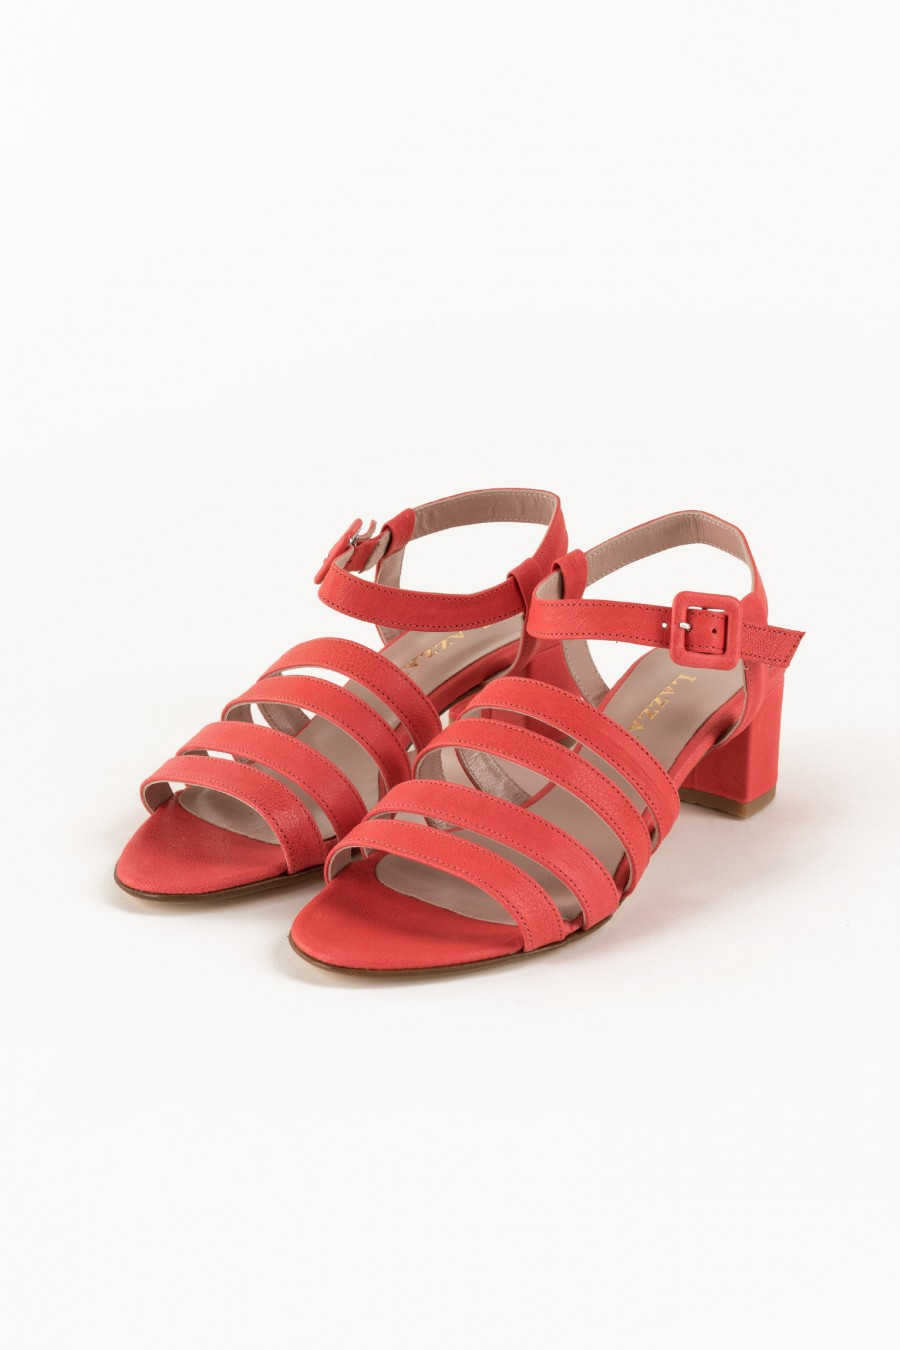 Lobster sandals with lists